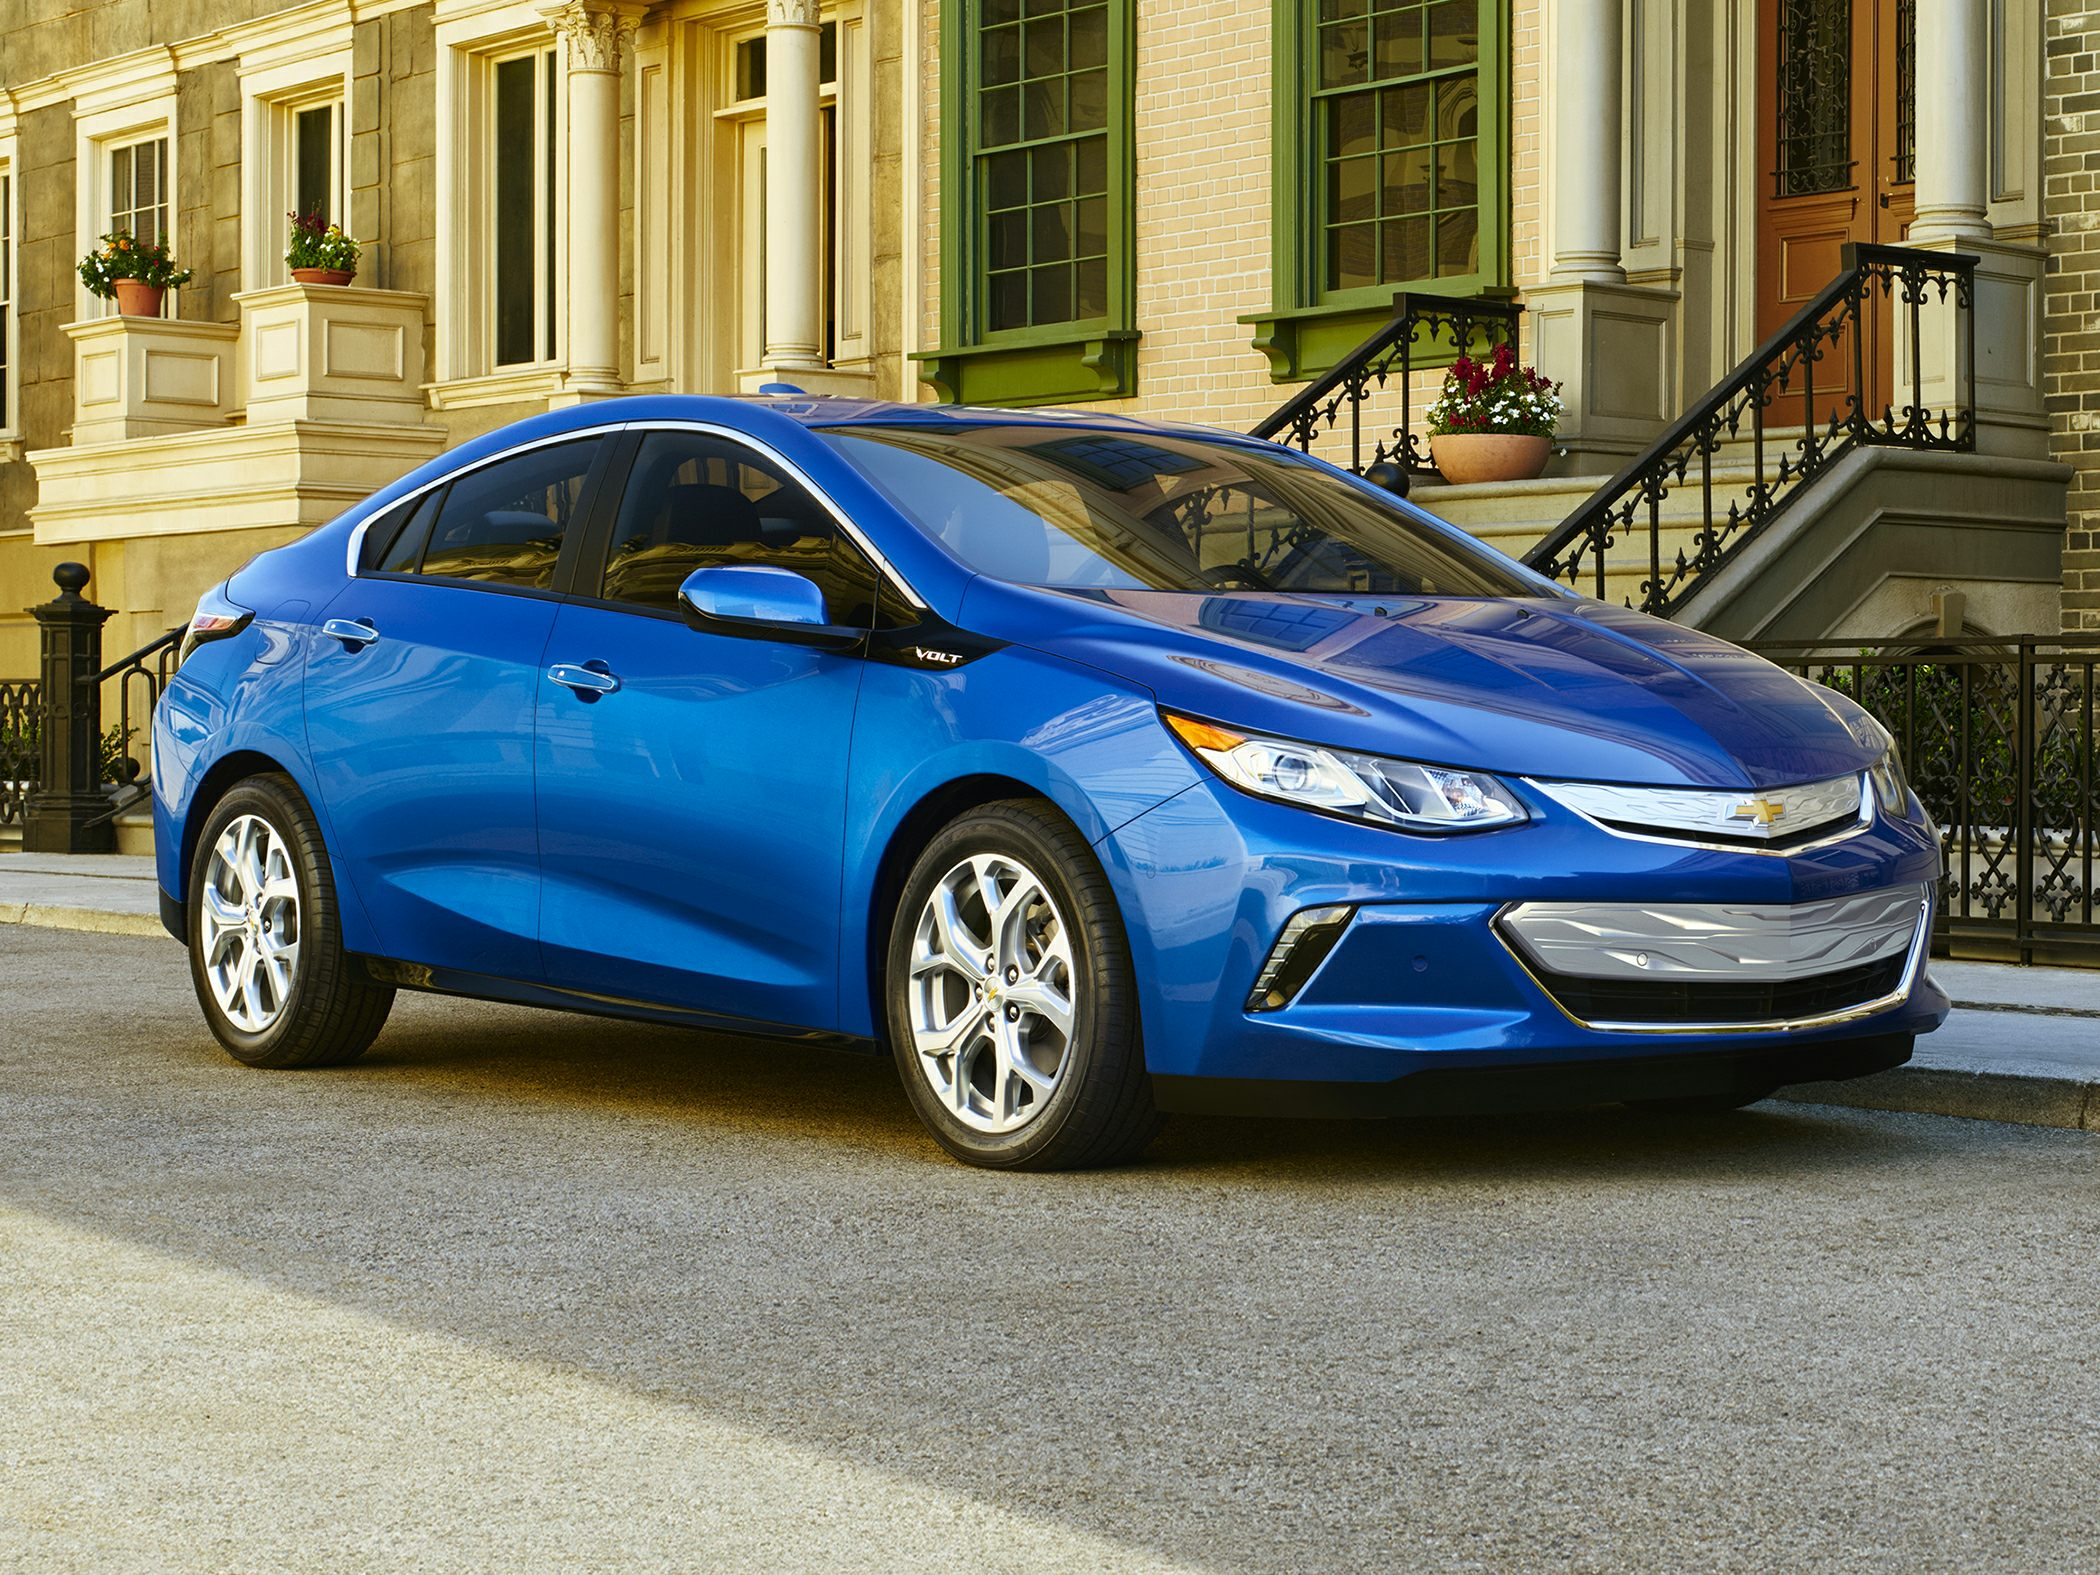 2018 Chevrolet Volt Deals Prices Incentives Leases Overview